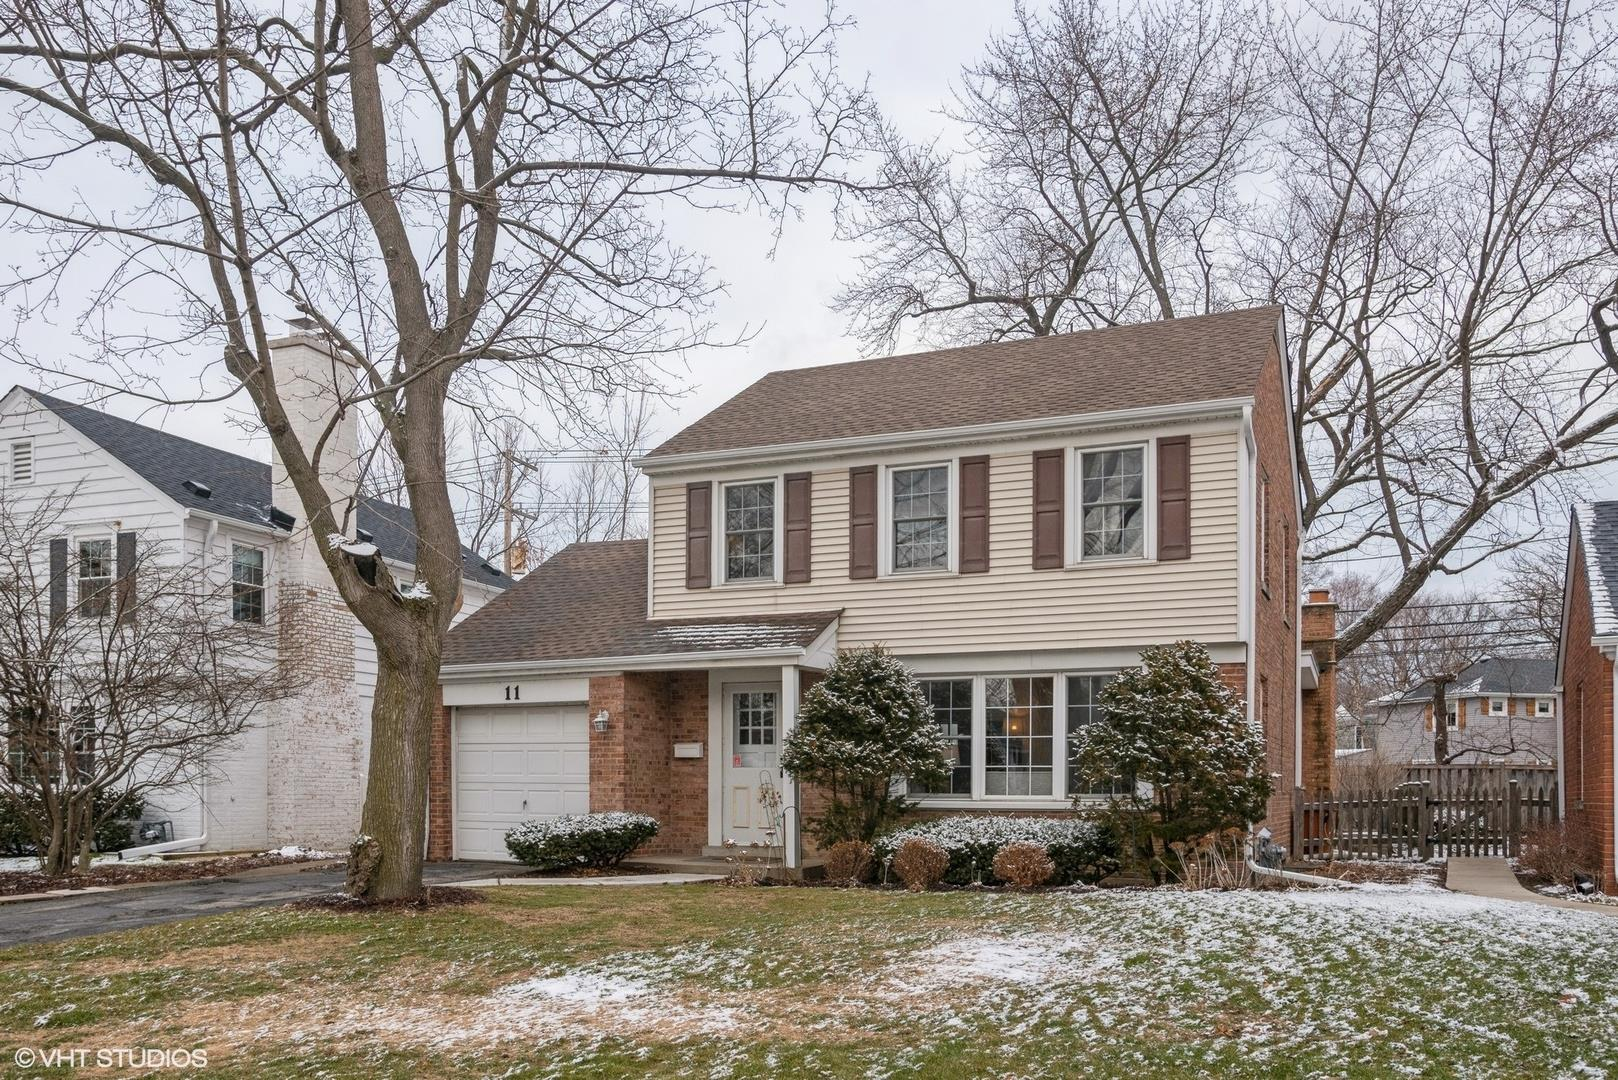 11 Salem Lane, Evanston, IL 60203 - MLS#: 10974277